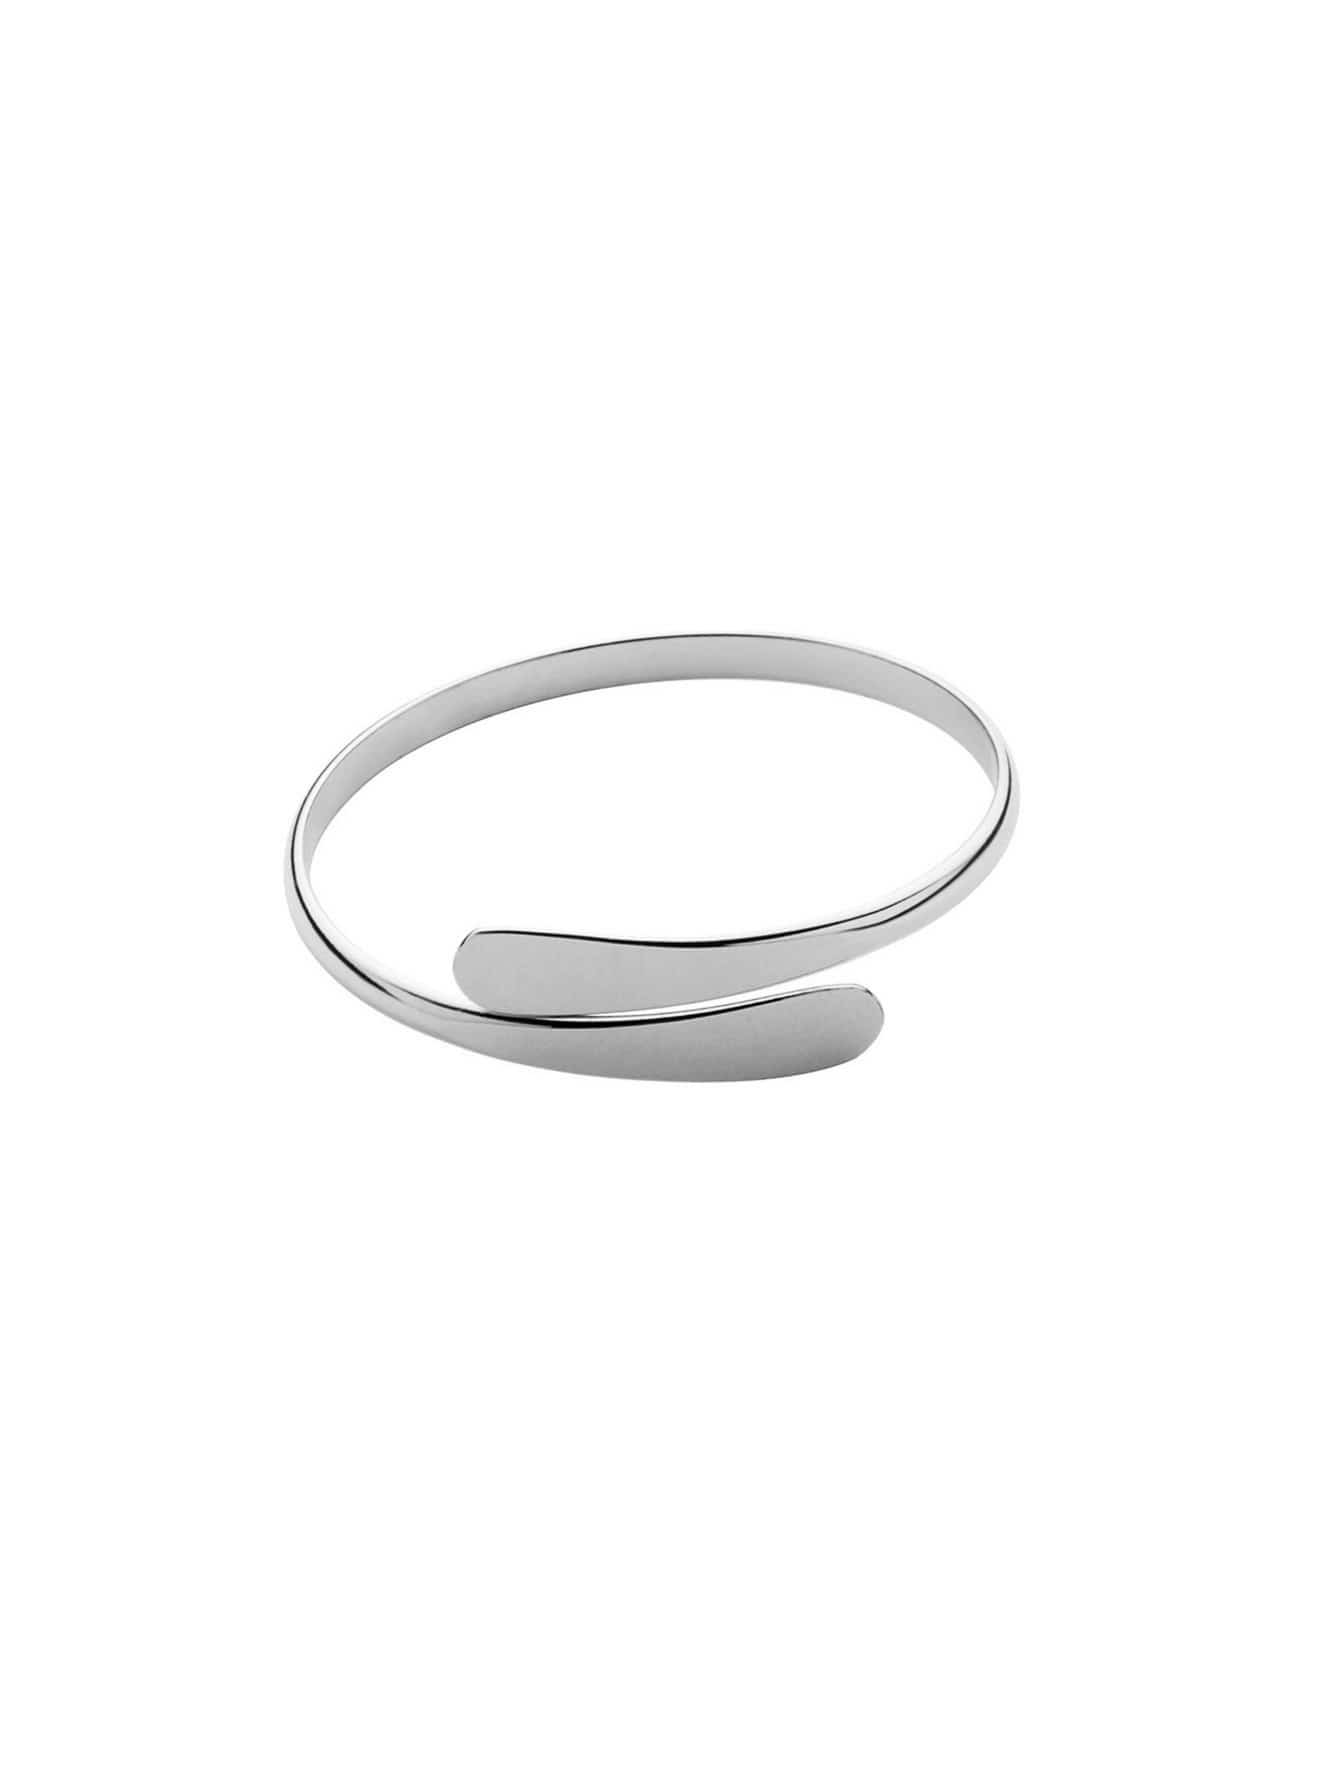 Flat Fronted Silver Open BraceletFlat Fronted Silver Open Bracelet<br><br>color: Silver<br>size: None